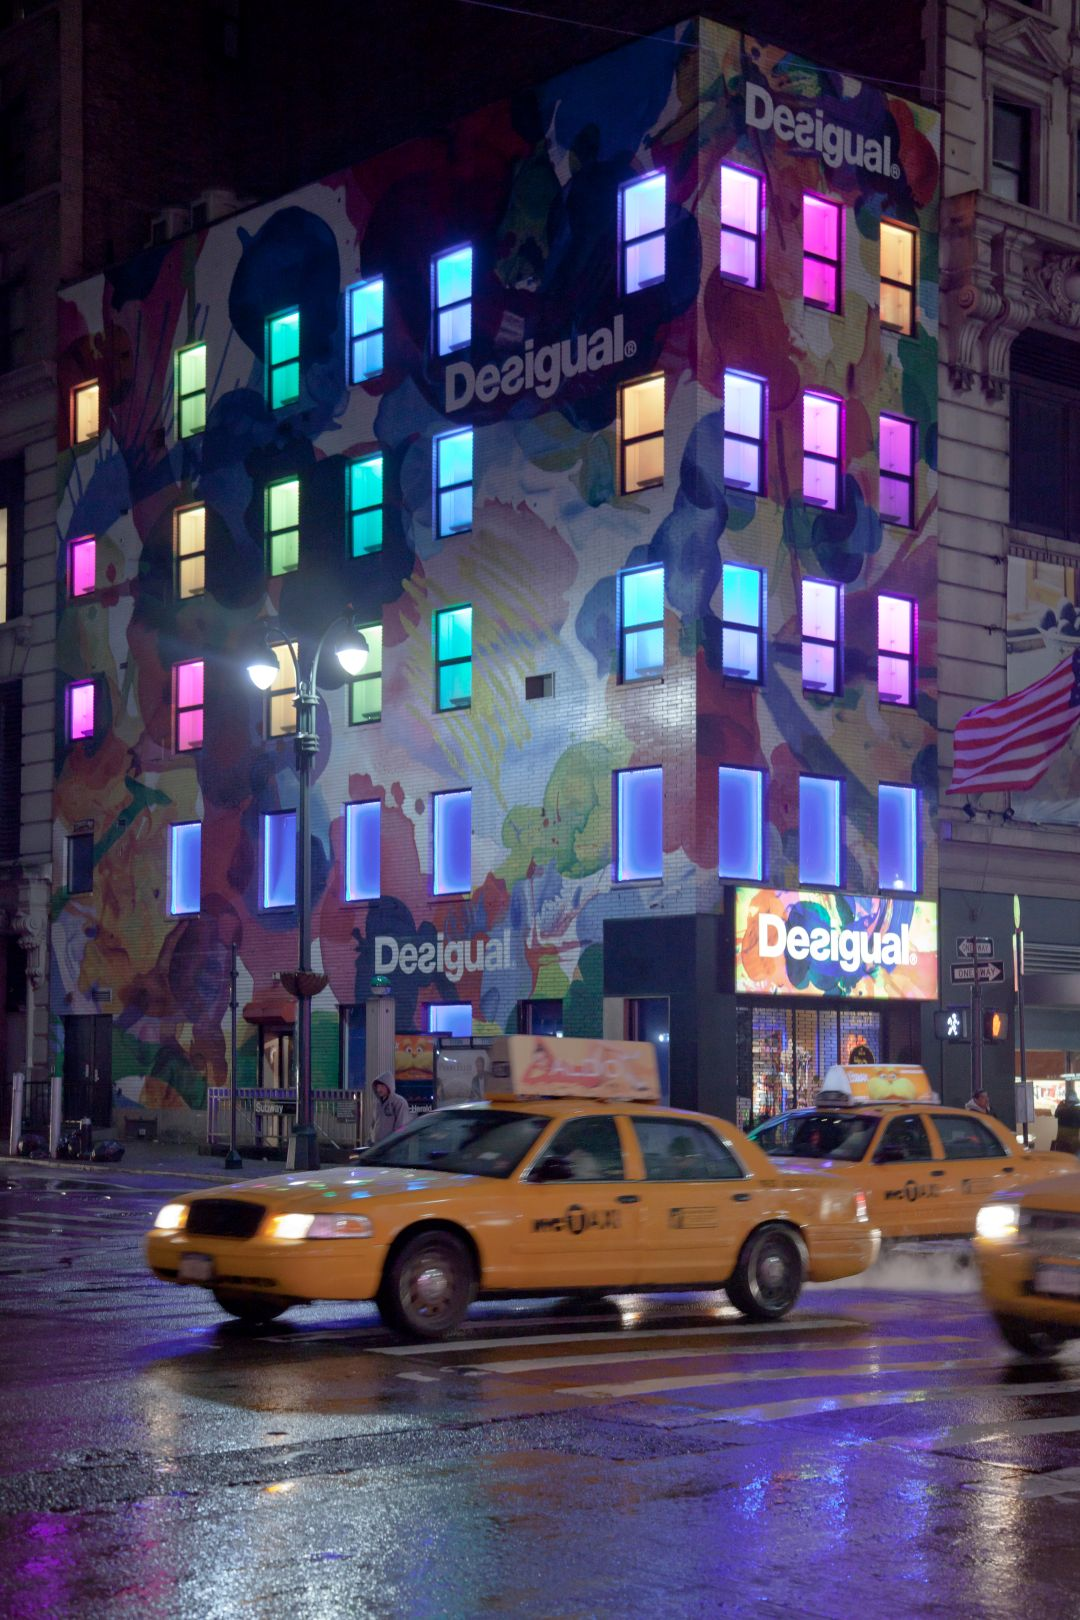 A photo depicting New York City Desigual Store At Night